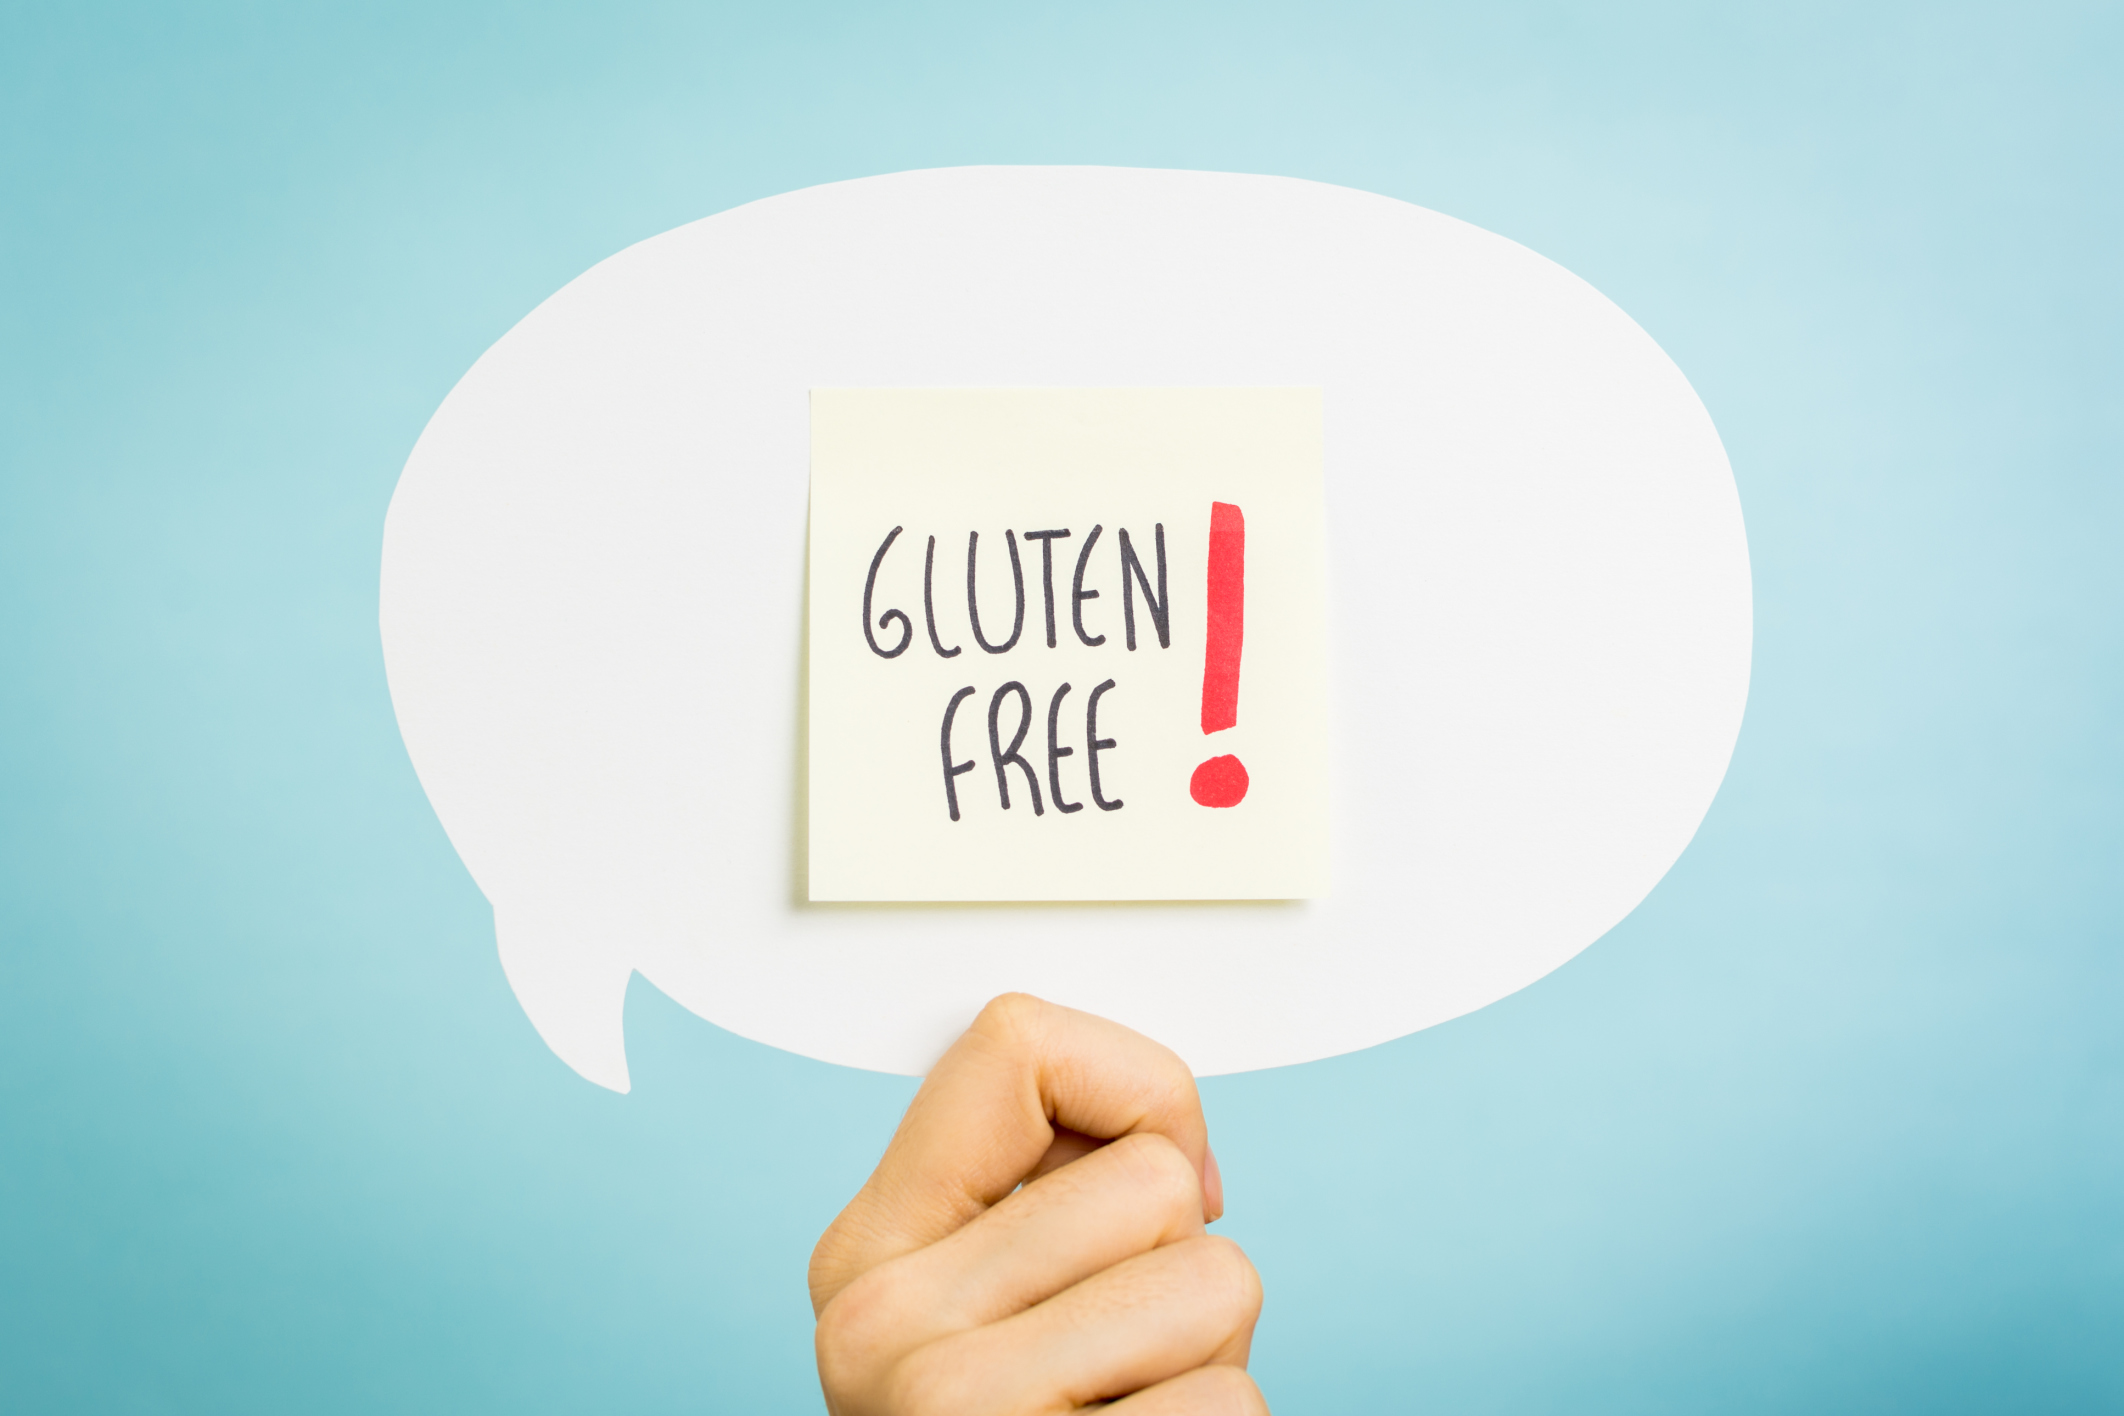 Relatives of Celiac disease patients face increased risk of autoimmune diseases